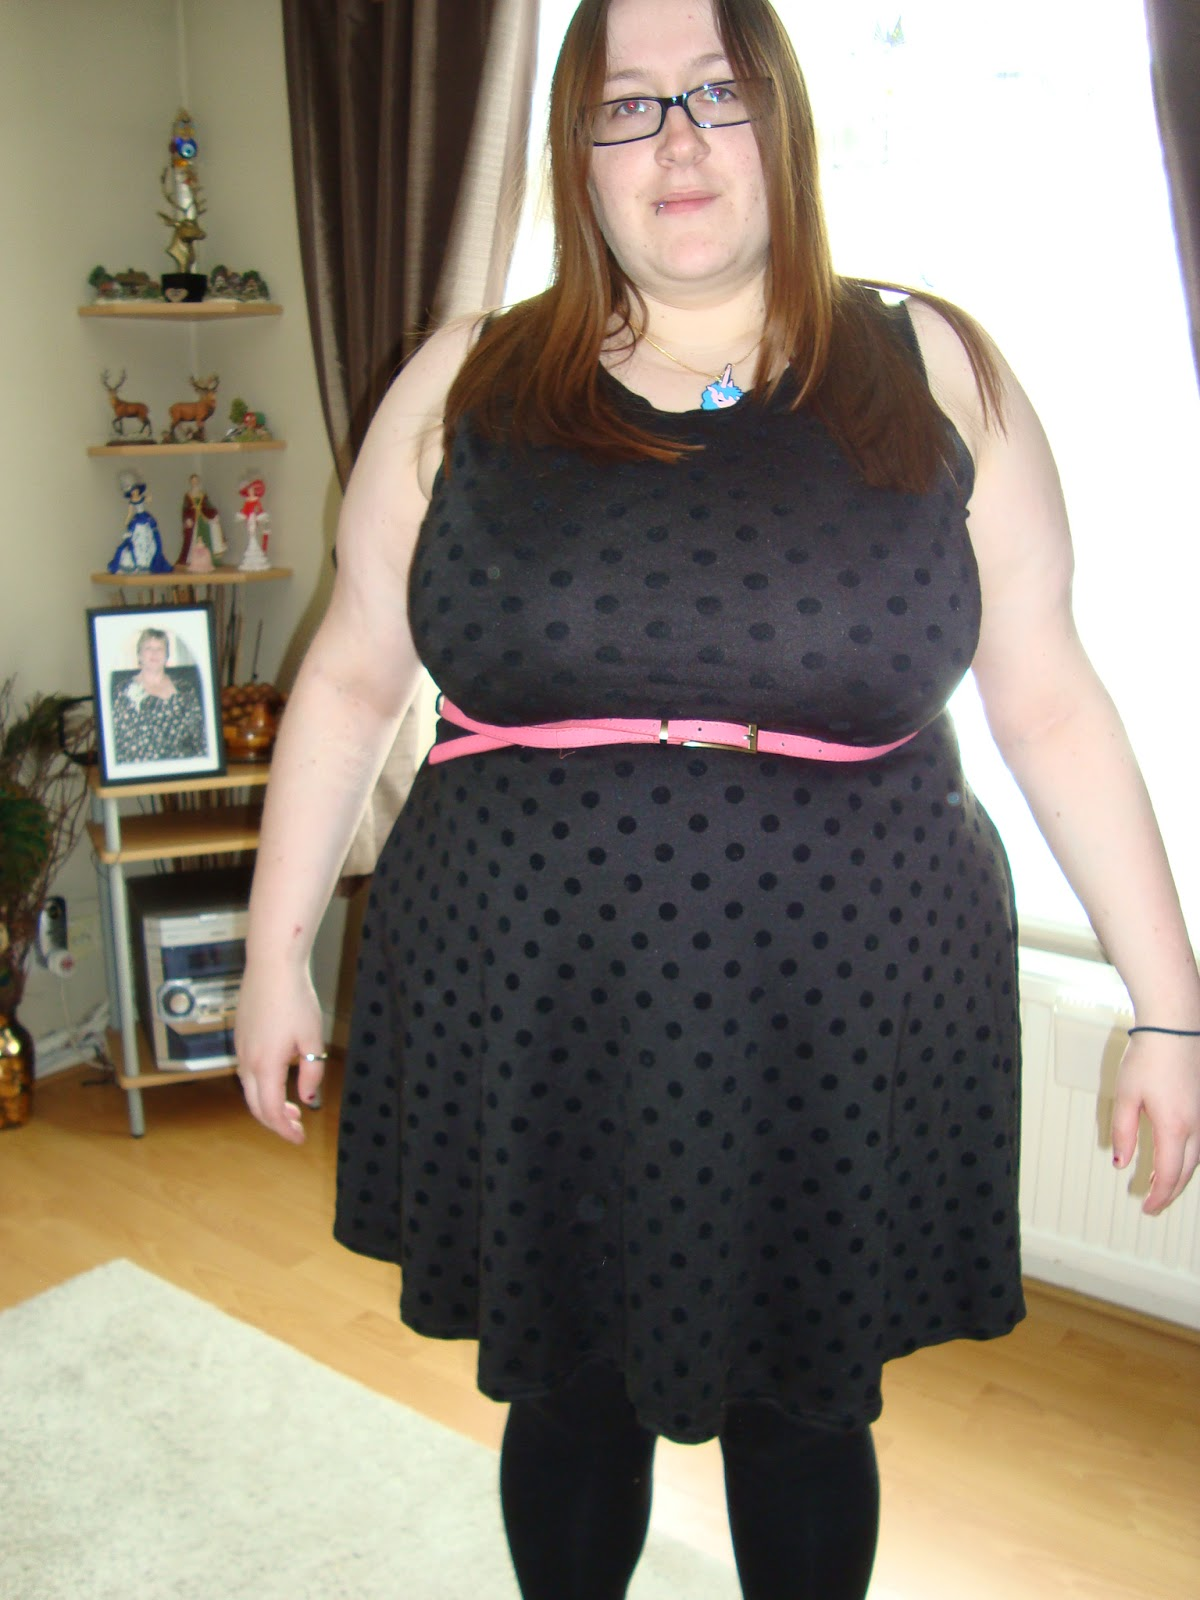 Ootd Dotty Does My Blog Make Me Look Fat